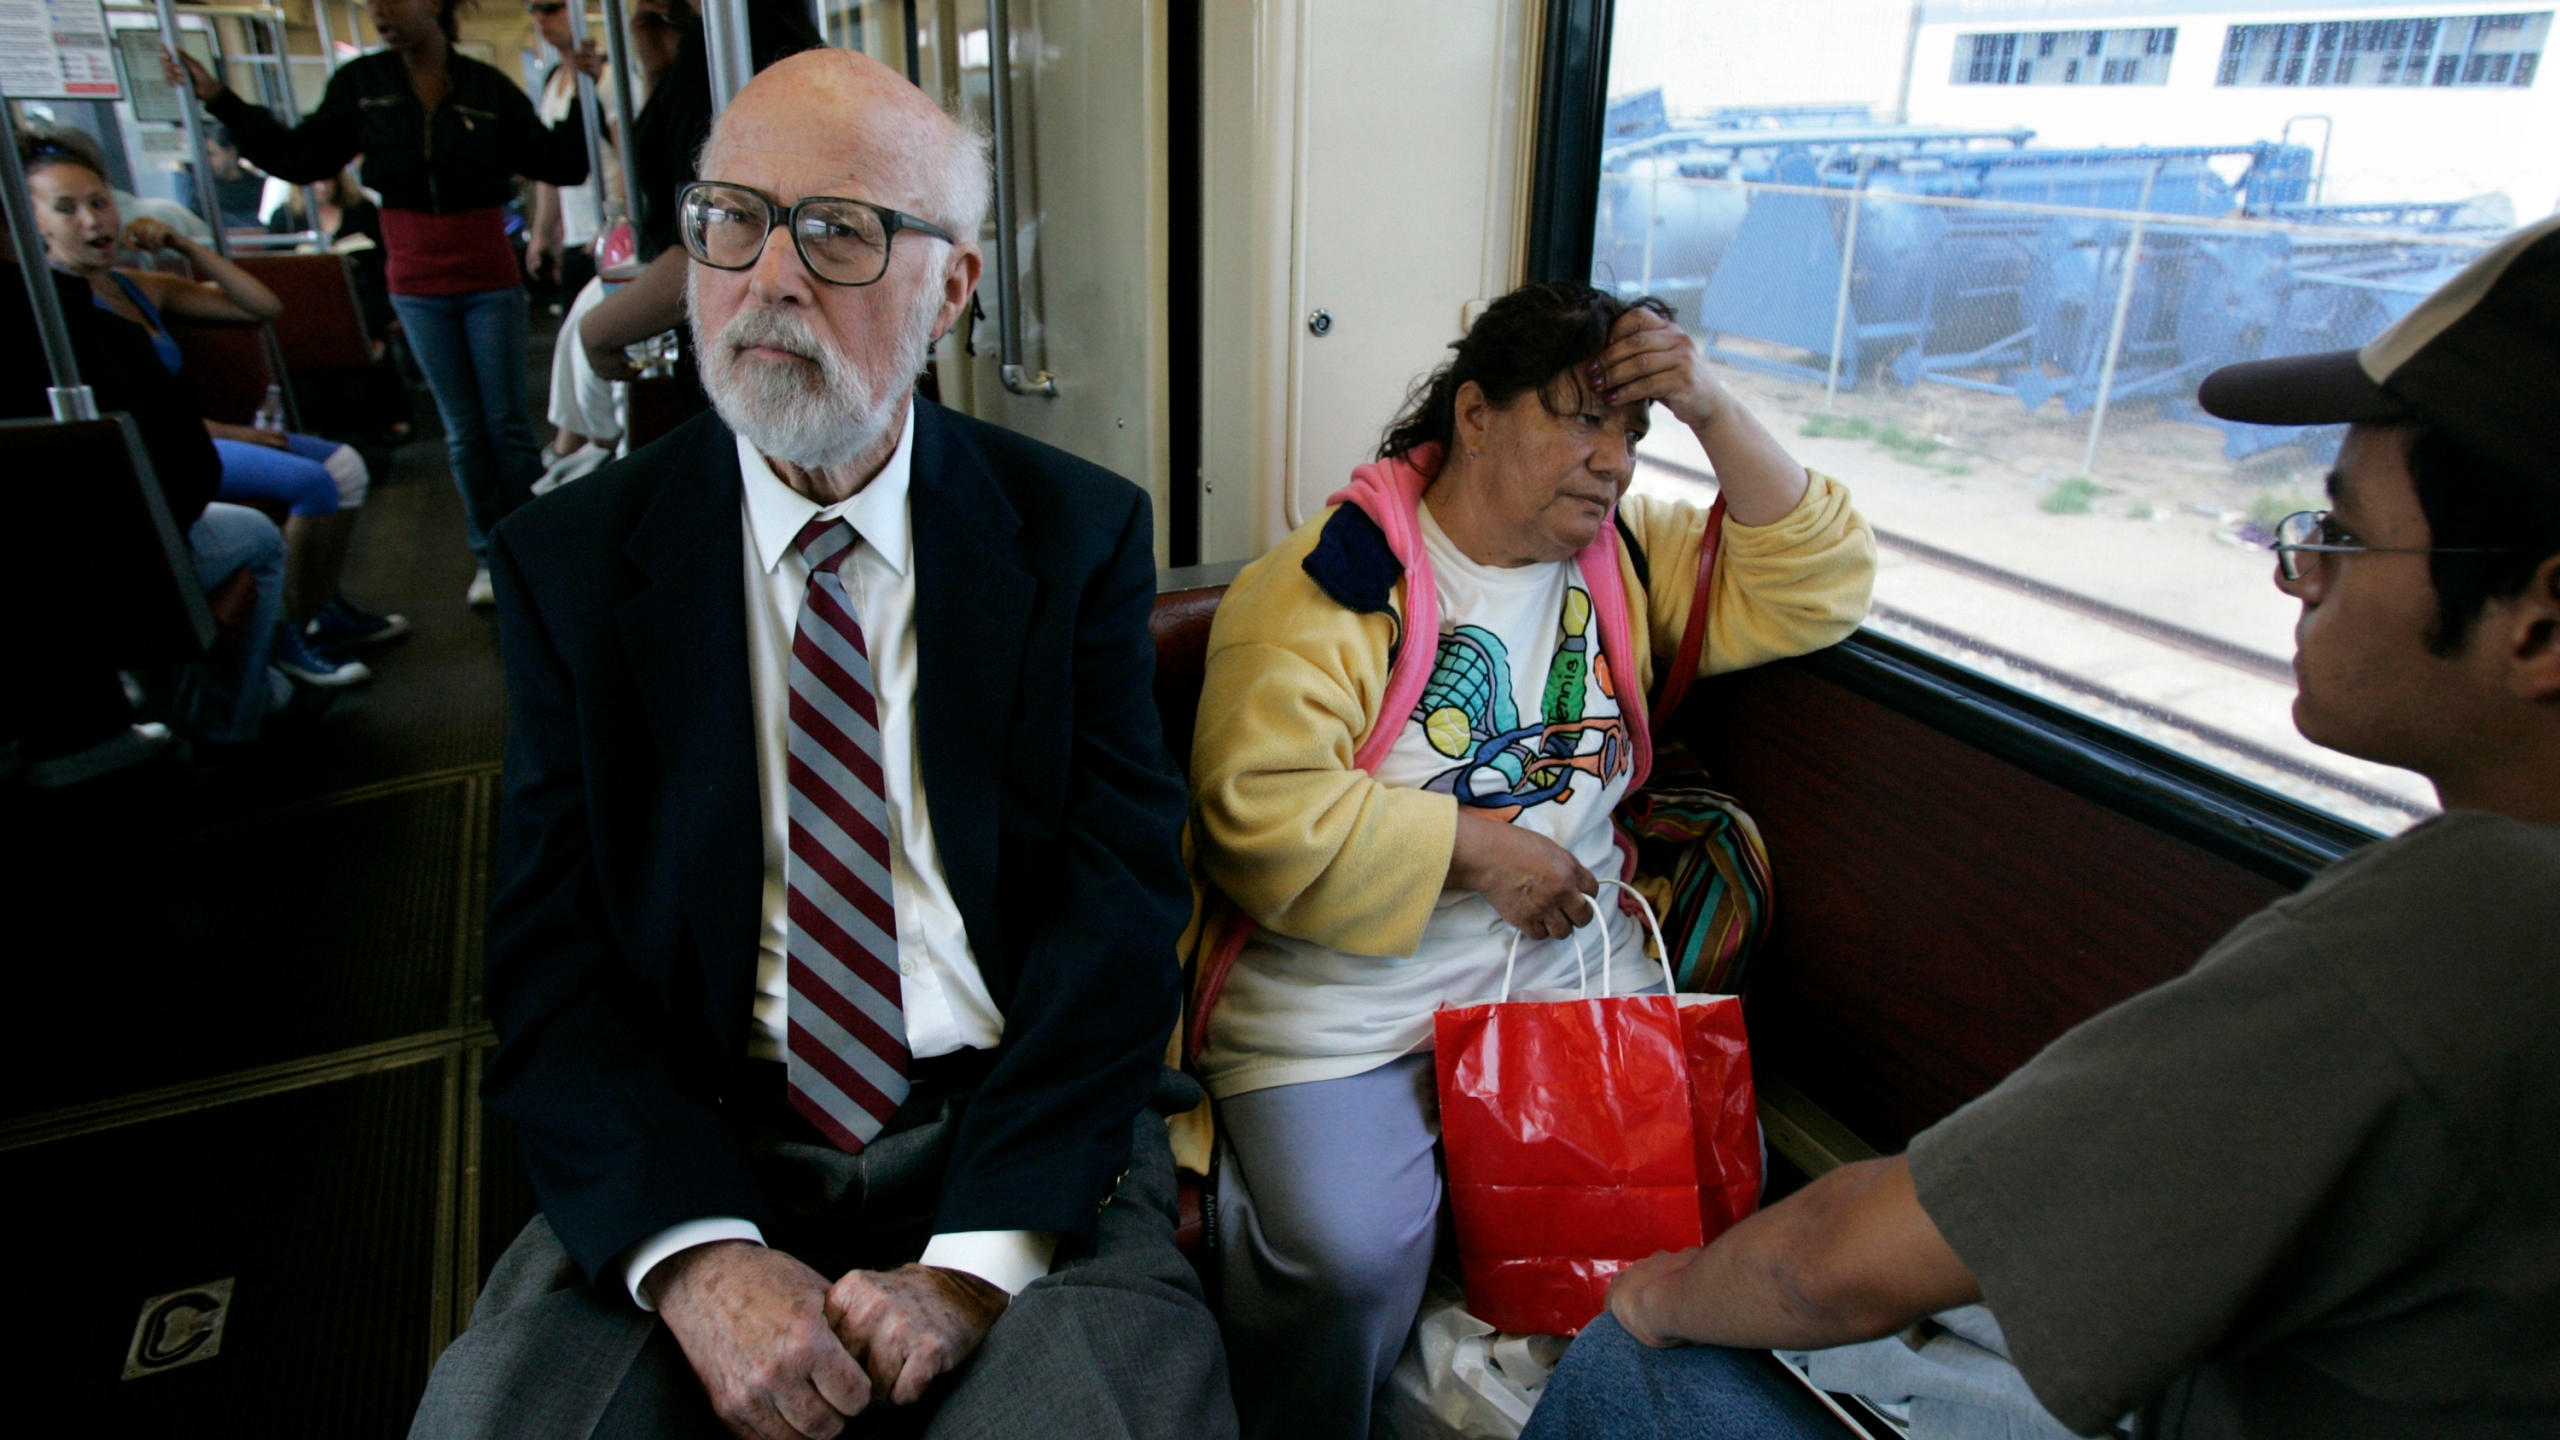 In this in May 2, 2007, photo, California state legislator James Mills, father of the San Diego Trolley, rides the Blue Line in San Diego. (Laura Embry/The San Diego Union-Tribune via AP, File)